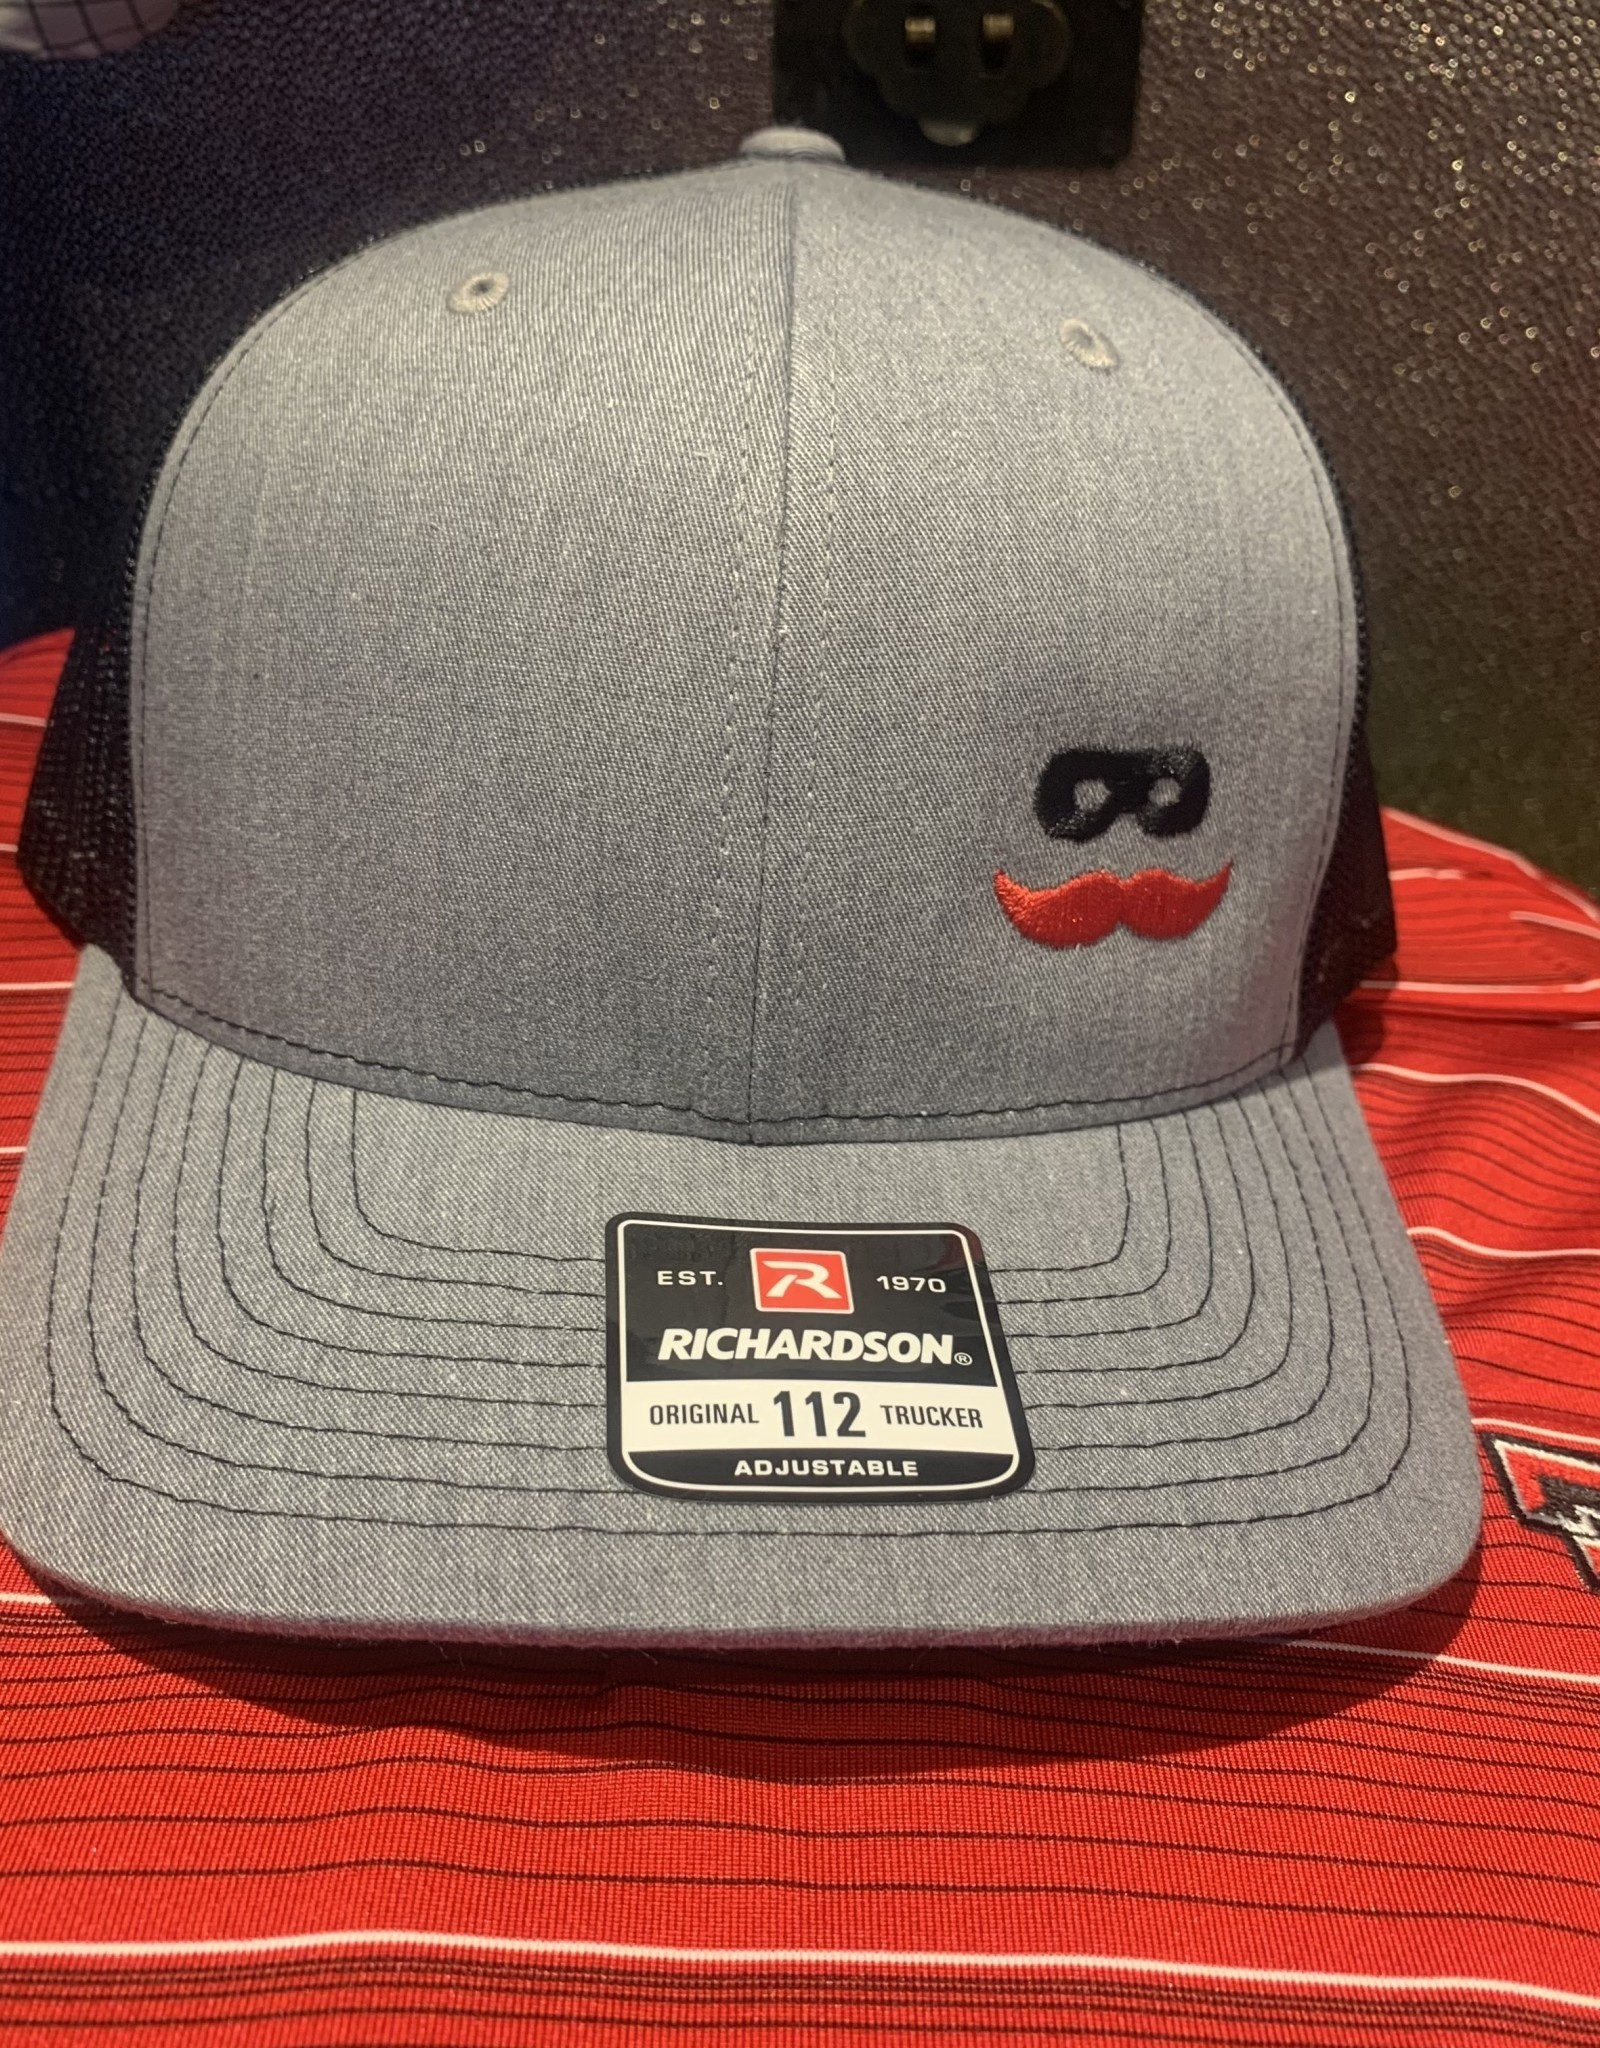 Stag GameDay Richardson 112 Trucker Hat Grey/Black Side Mustache